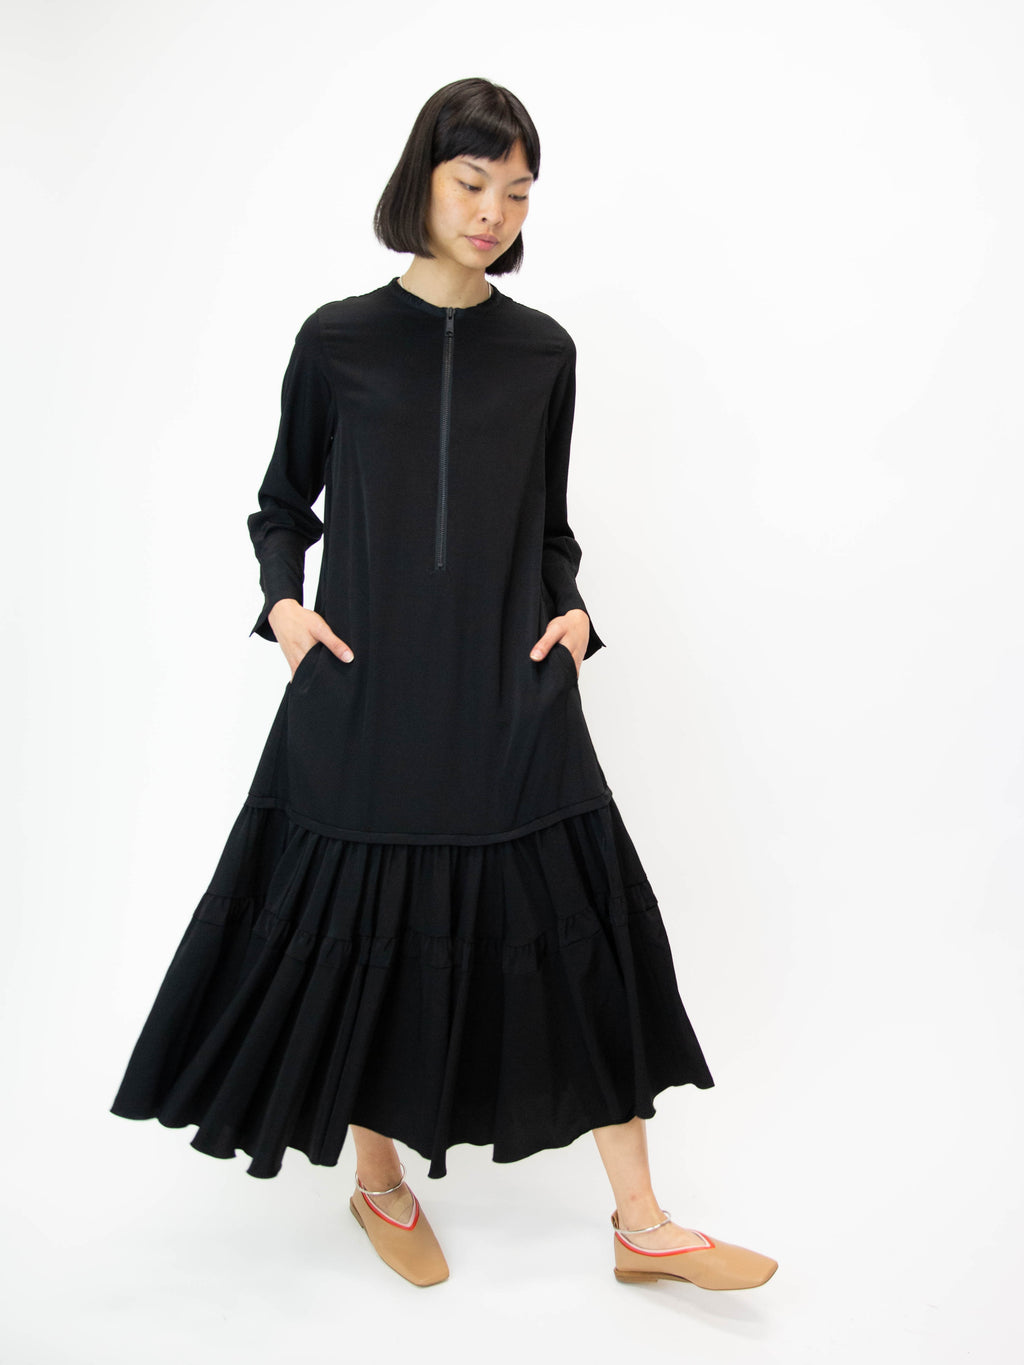 Ruffle Skirt Dress - Black